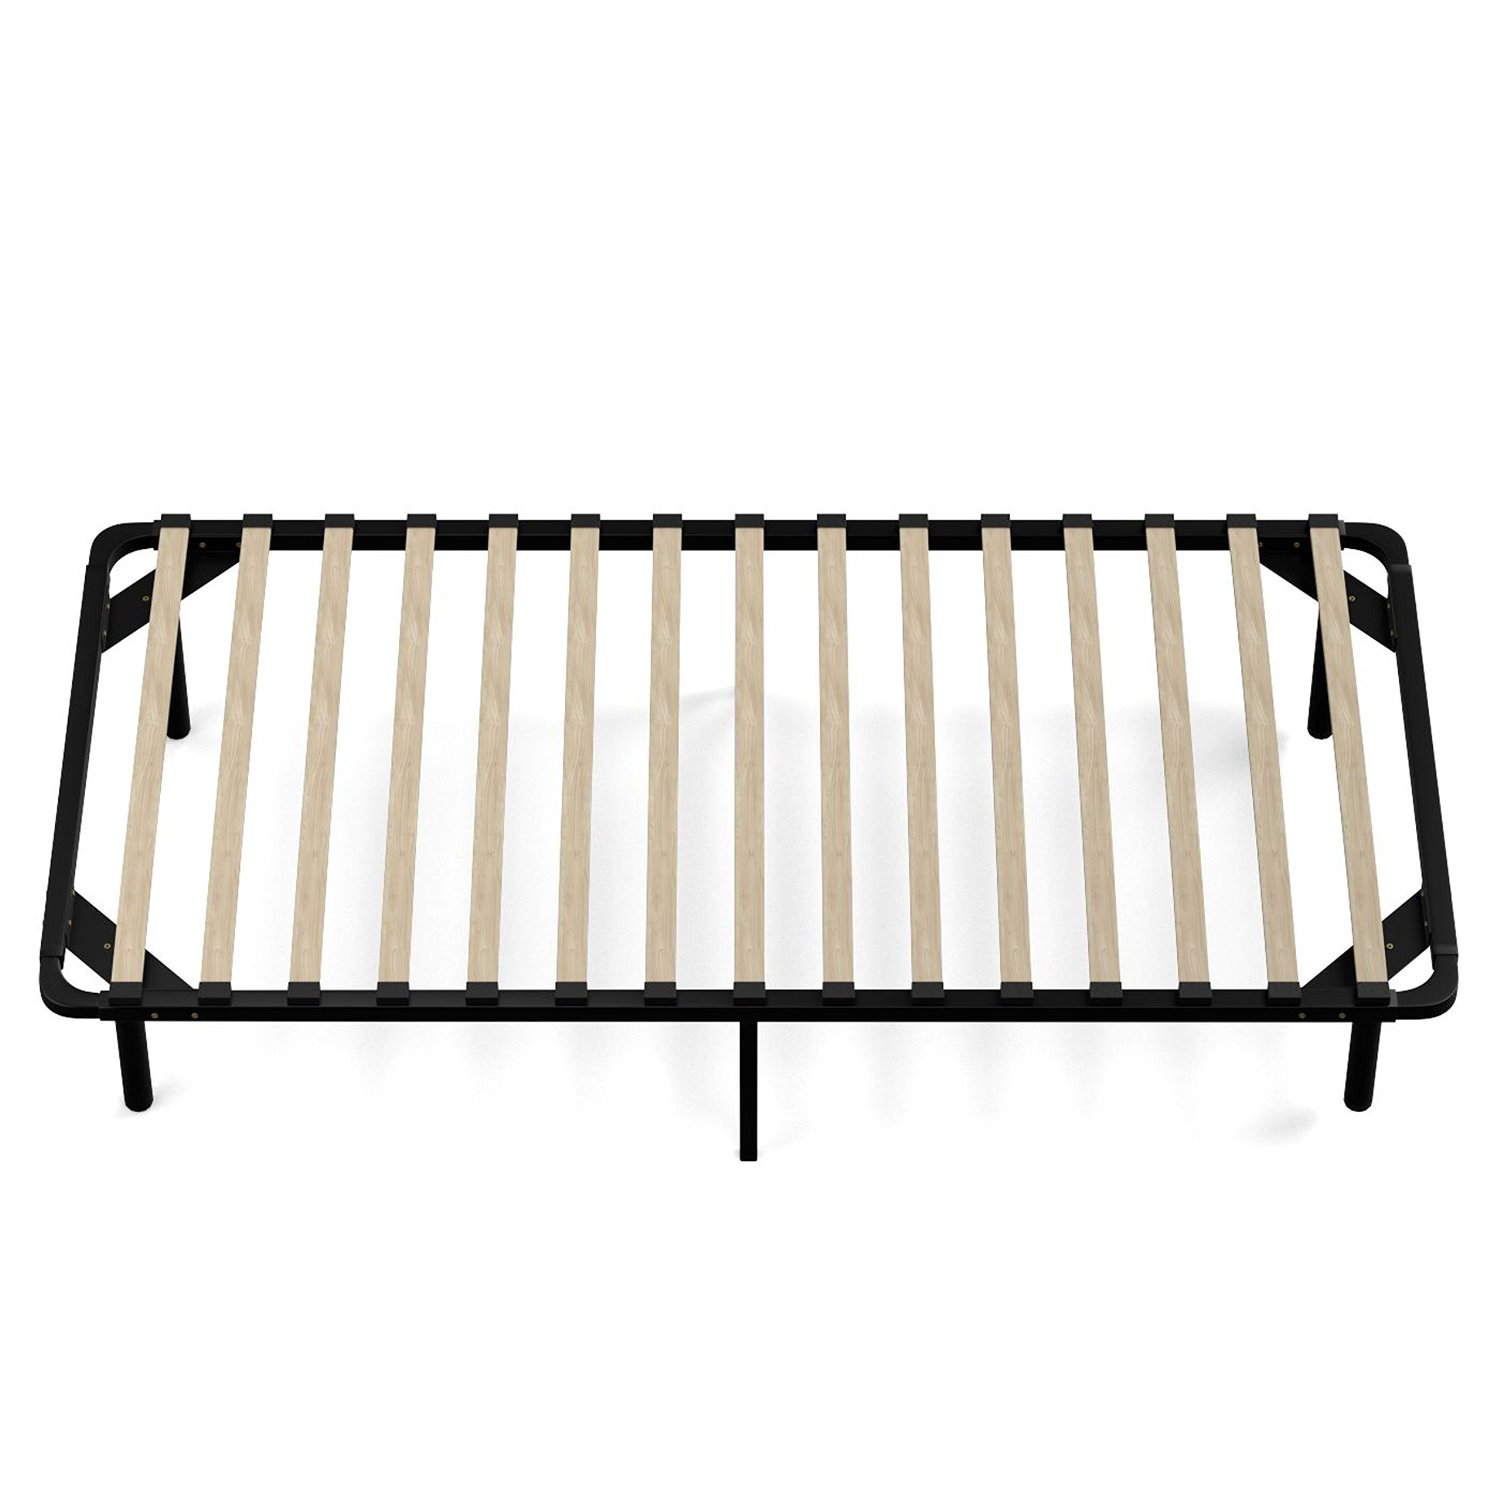 Top 10 Twin Size Beds — Best Reviews for Your Easy Choice in 2020